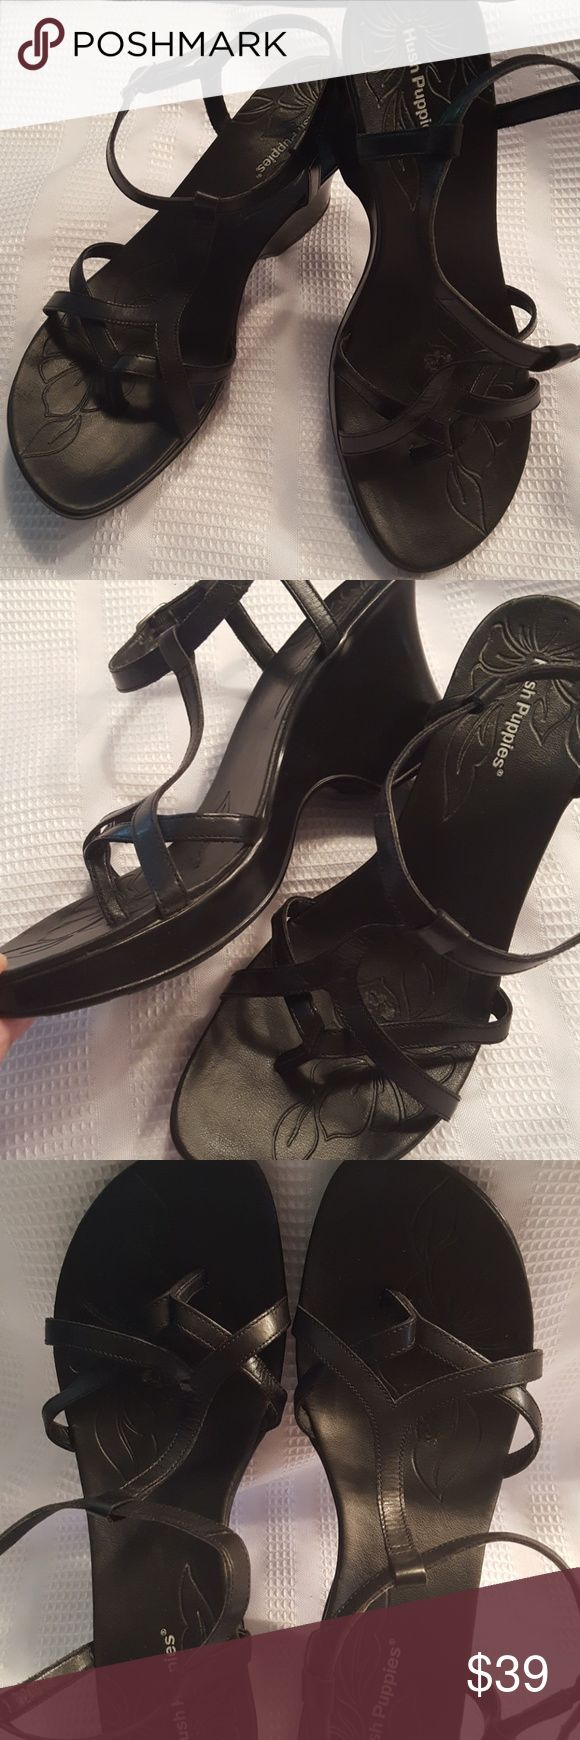 🔶️JUST IN🔶️ Hush Puppies Black Strappy Sandals Gently worn and very comfortable! SZ  9.5 black Strappy buckle sandals from Hush Puppies. EUC. Hush Puppies Shoes Sandals